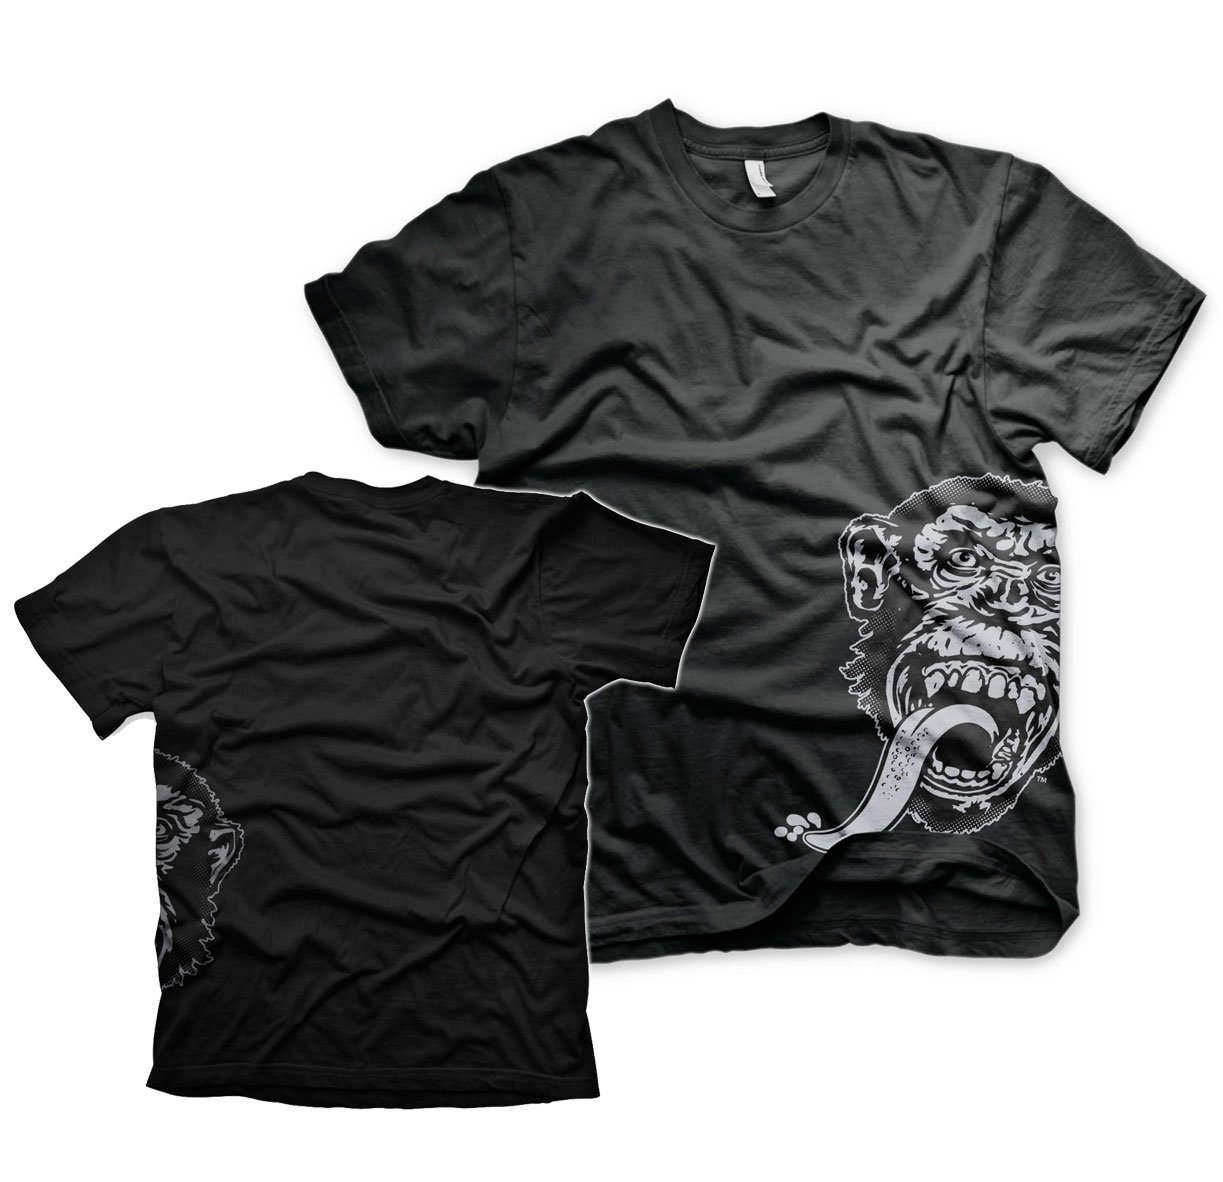 Officially Licensed Merchandise Gas Monkey Sidekick T-Shirt (Black) Small, X-Large